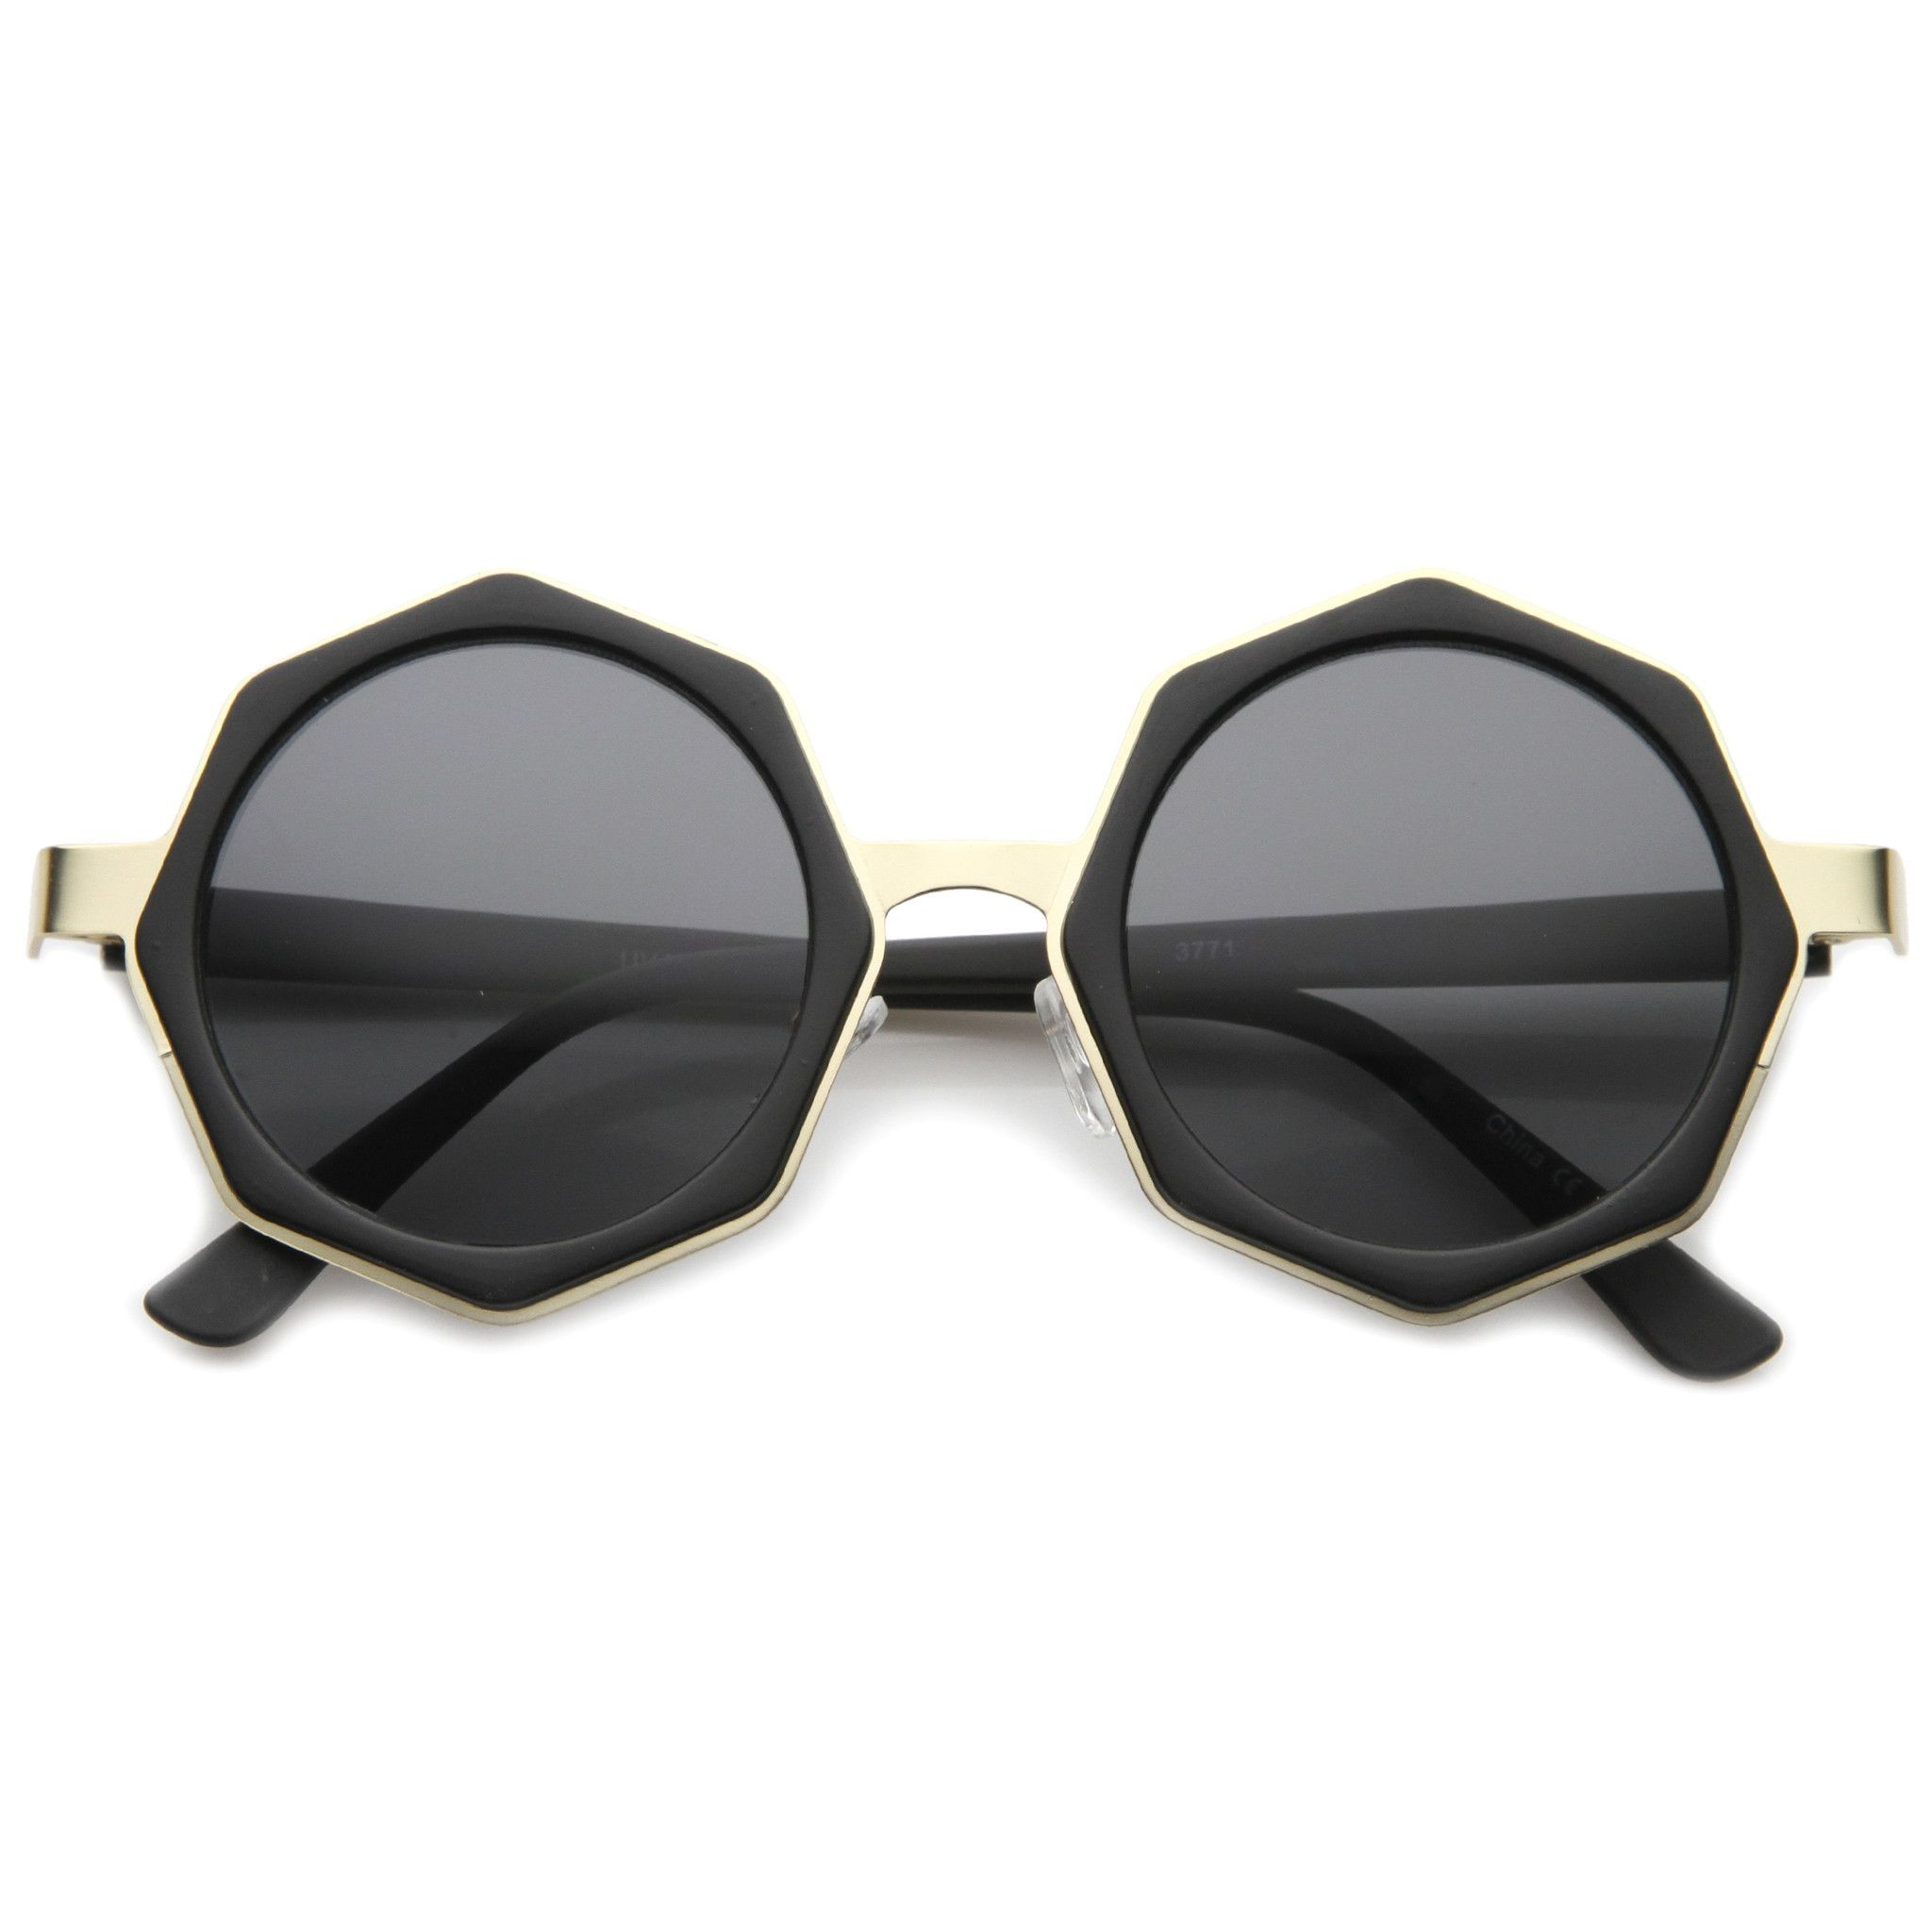 ead79546e ... away from the traditional square and circle frames with these stunning  shades featuring an octagon-shaped design and neutral-hued round flat  lenses. Fin